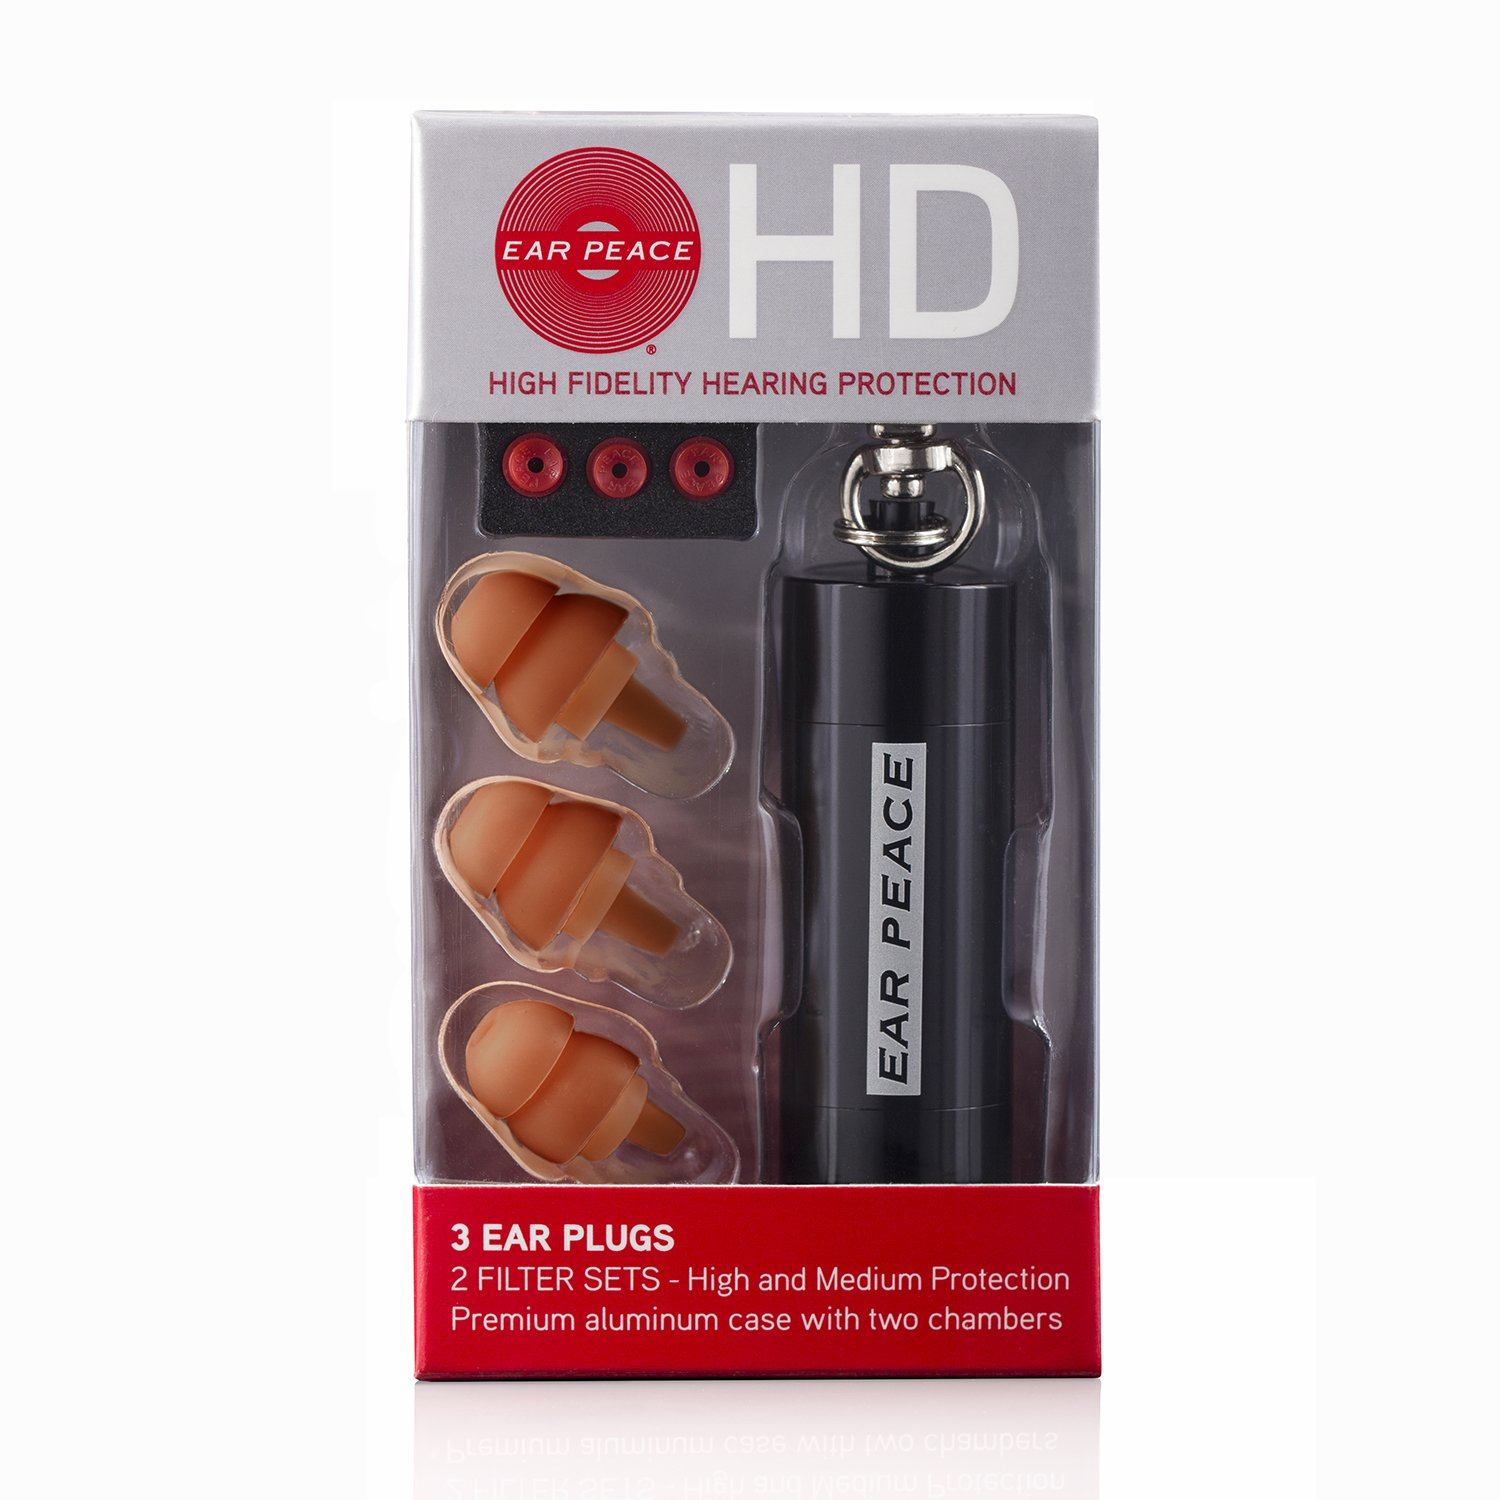 Amazon.com: EarPeace HD Ear Plugs - High Fidelity Hearing Protection for Concerts & Music Professionals (Black/Brown): Health & Personal Care